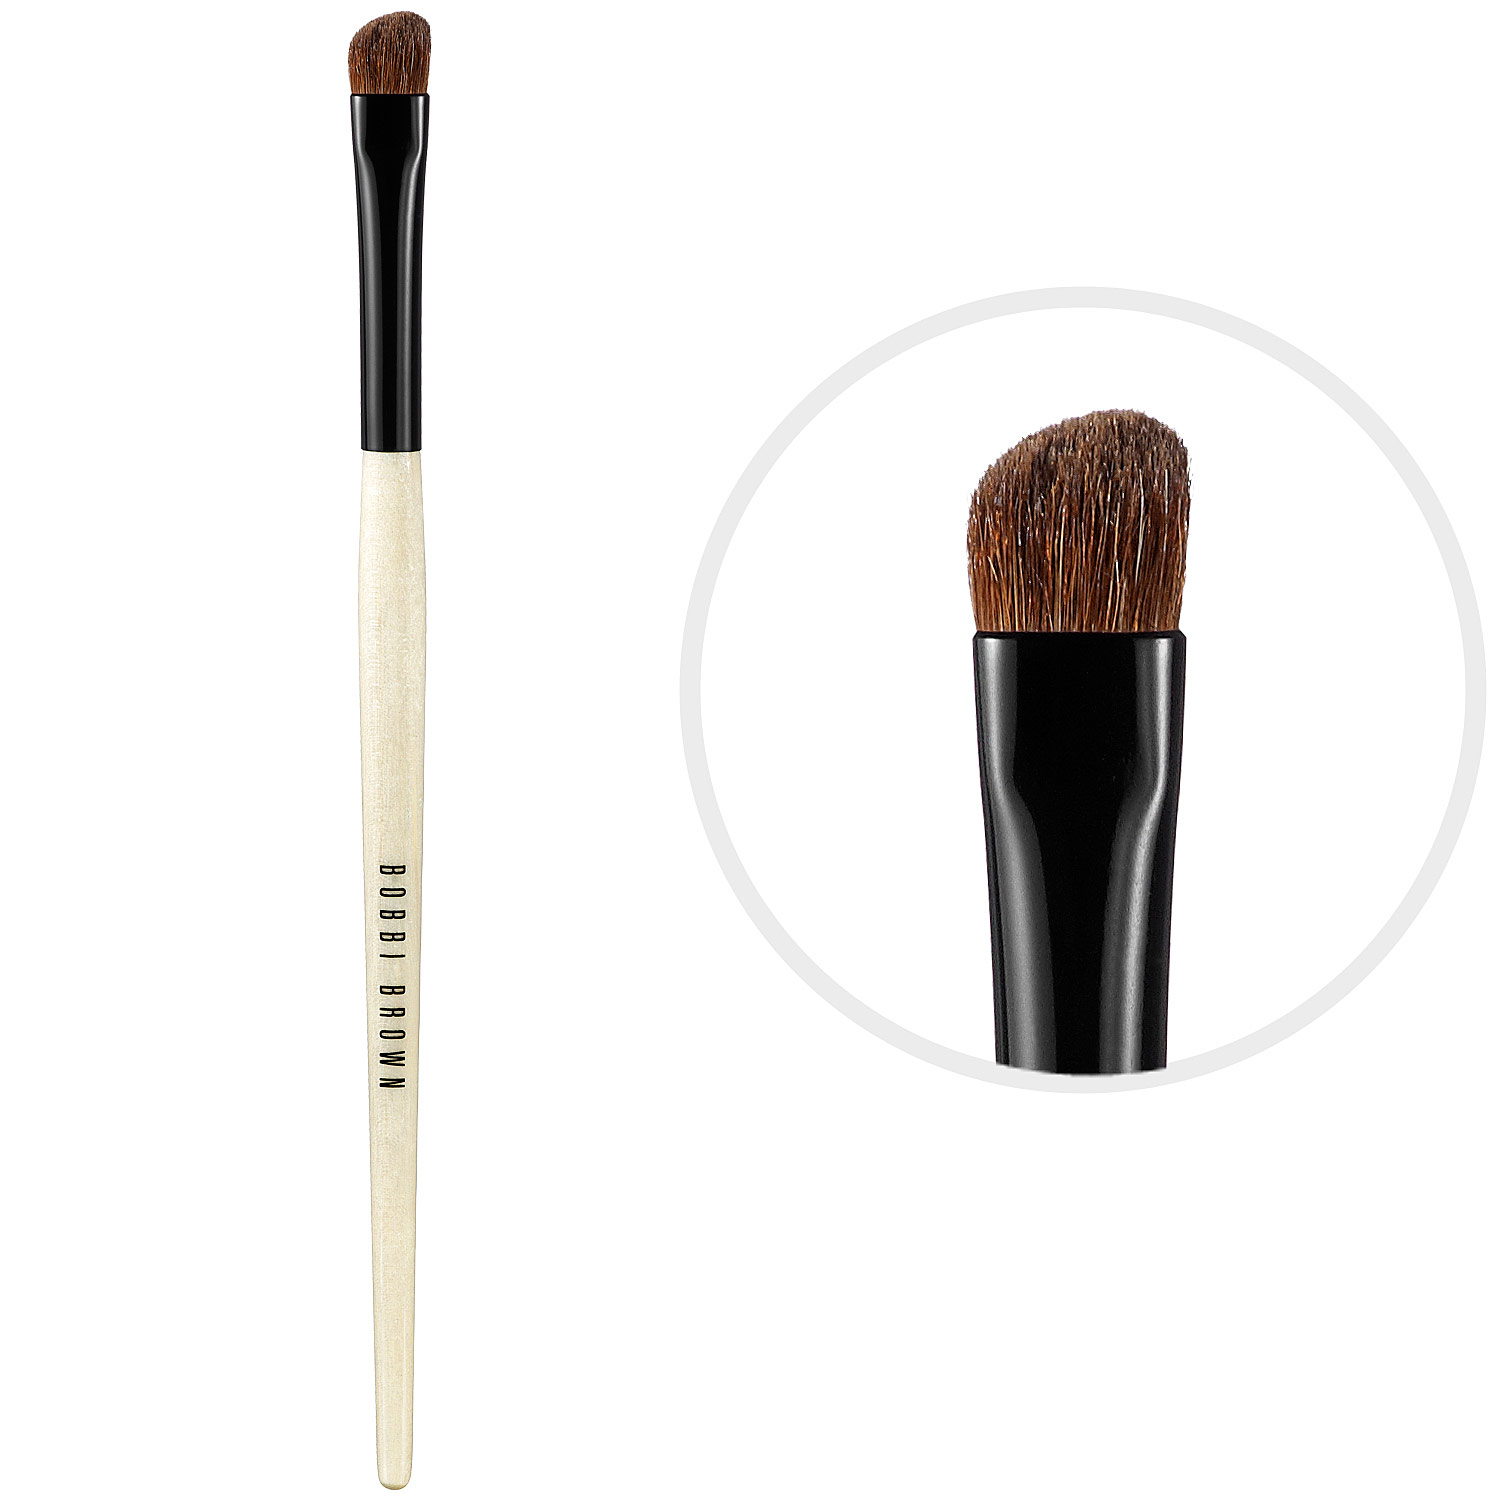 types of eye makeup brushes. the angled eye shadow brush or contour is then used for layering colour and creating hard lines along eyelid crease. types of makeup brushes